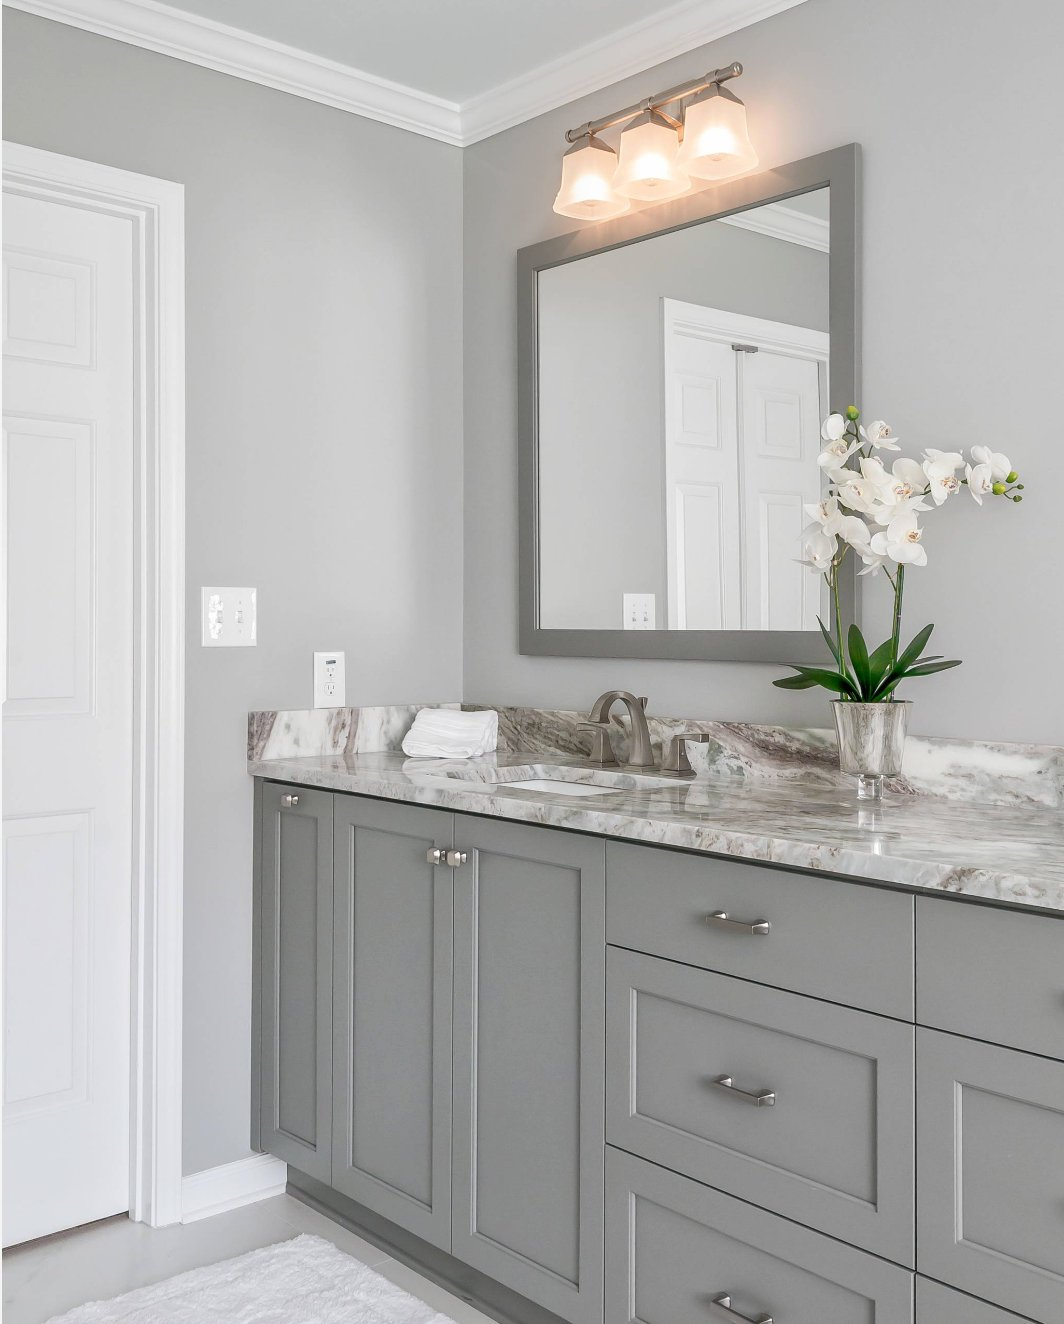 Sherwin Williams Classic French Gray Cabinet Color Sherwin: Sherwin Williams Light French Gray: Color Spotlight